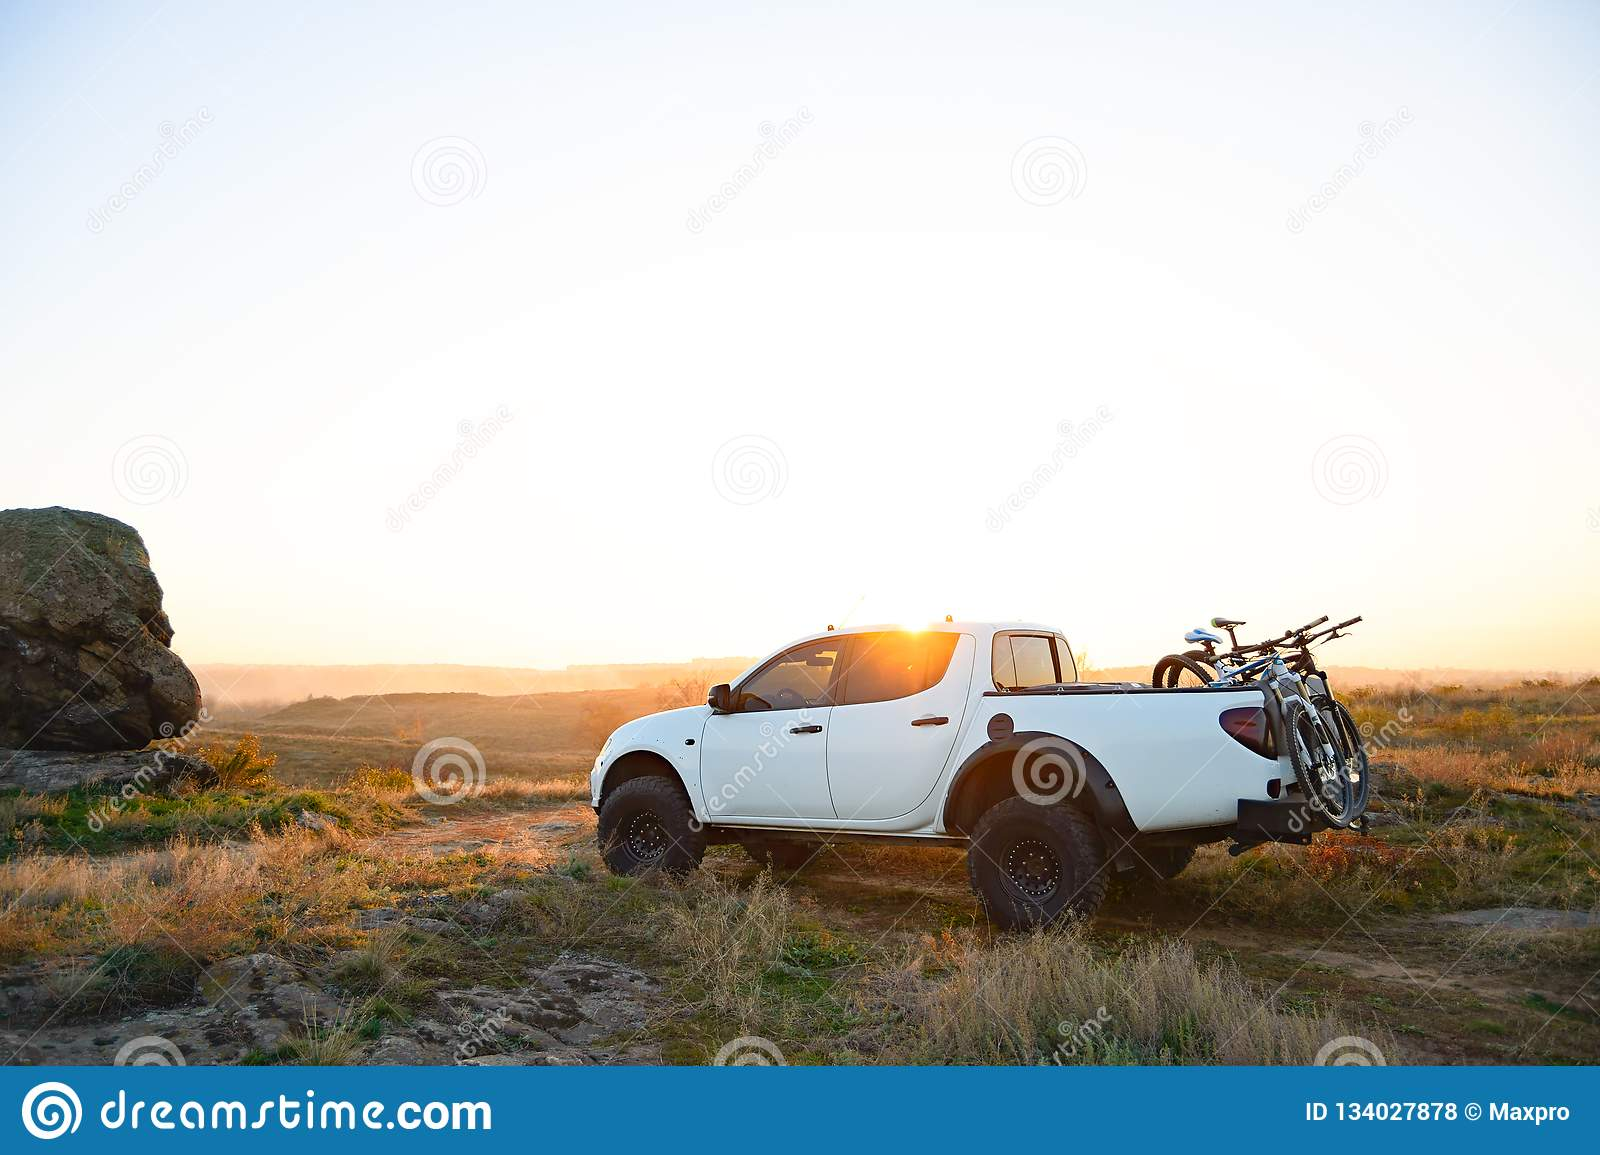 Pickup Offroad Truck With Bikes In The Body In The Mountains